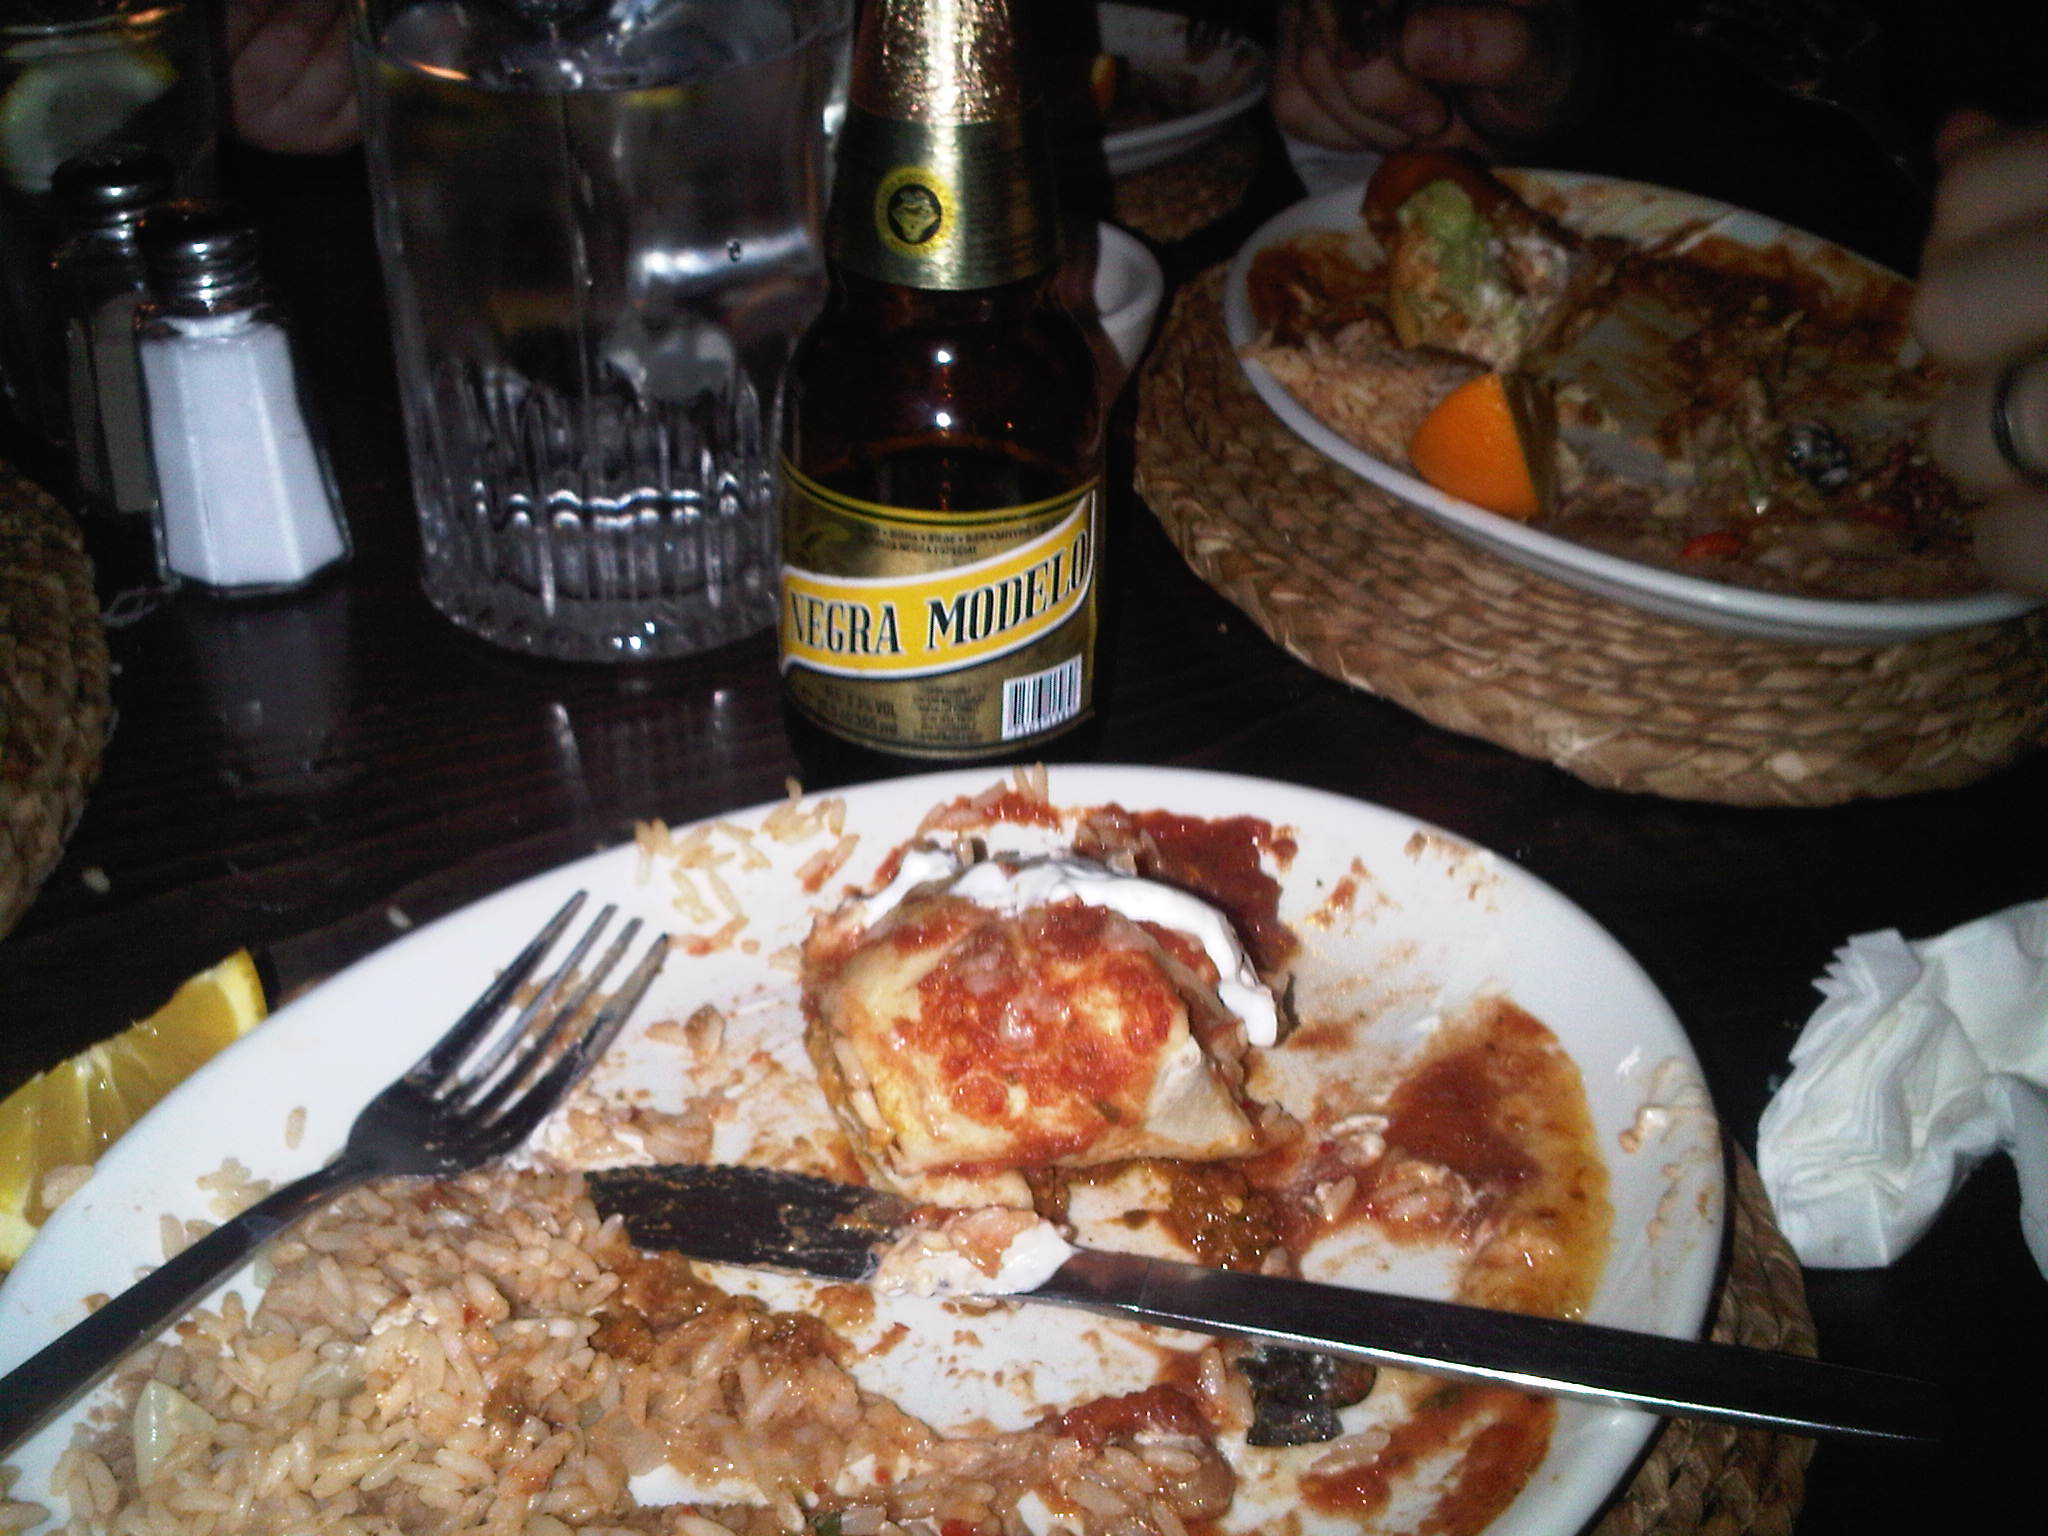 london, UK :: Burrito and a negra modelo at cafe Pacifico